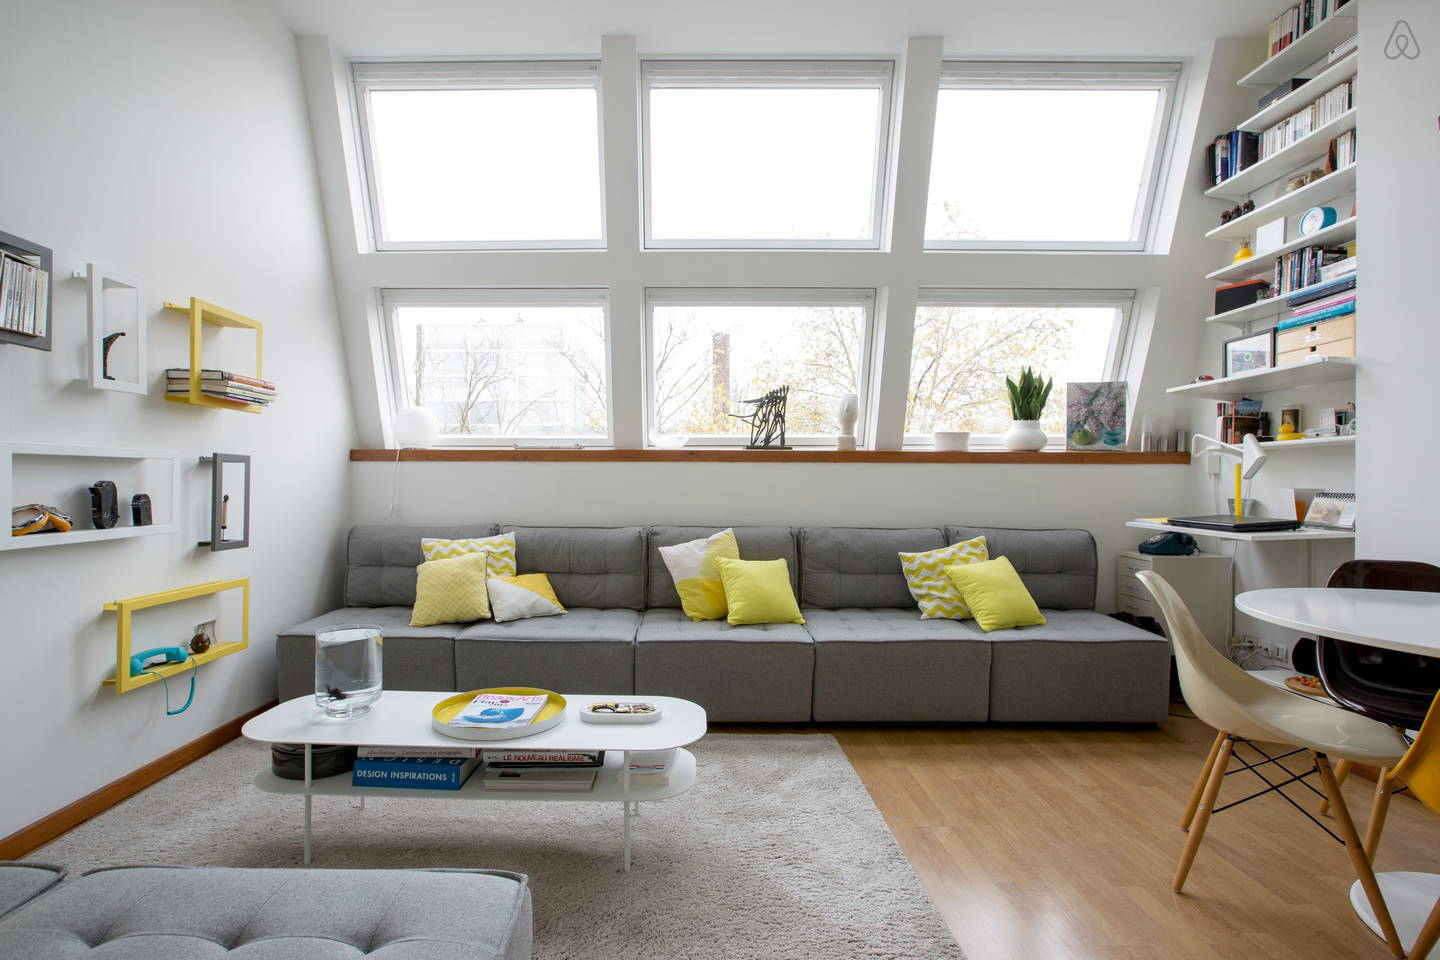 Deco appartement f2 for Location appartement design